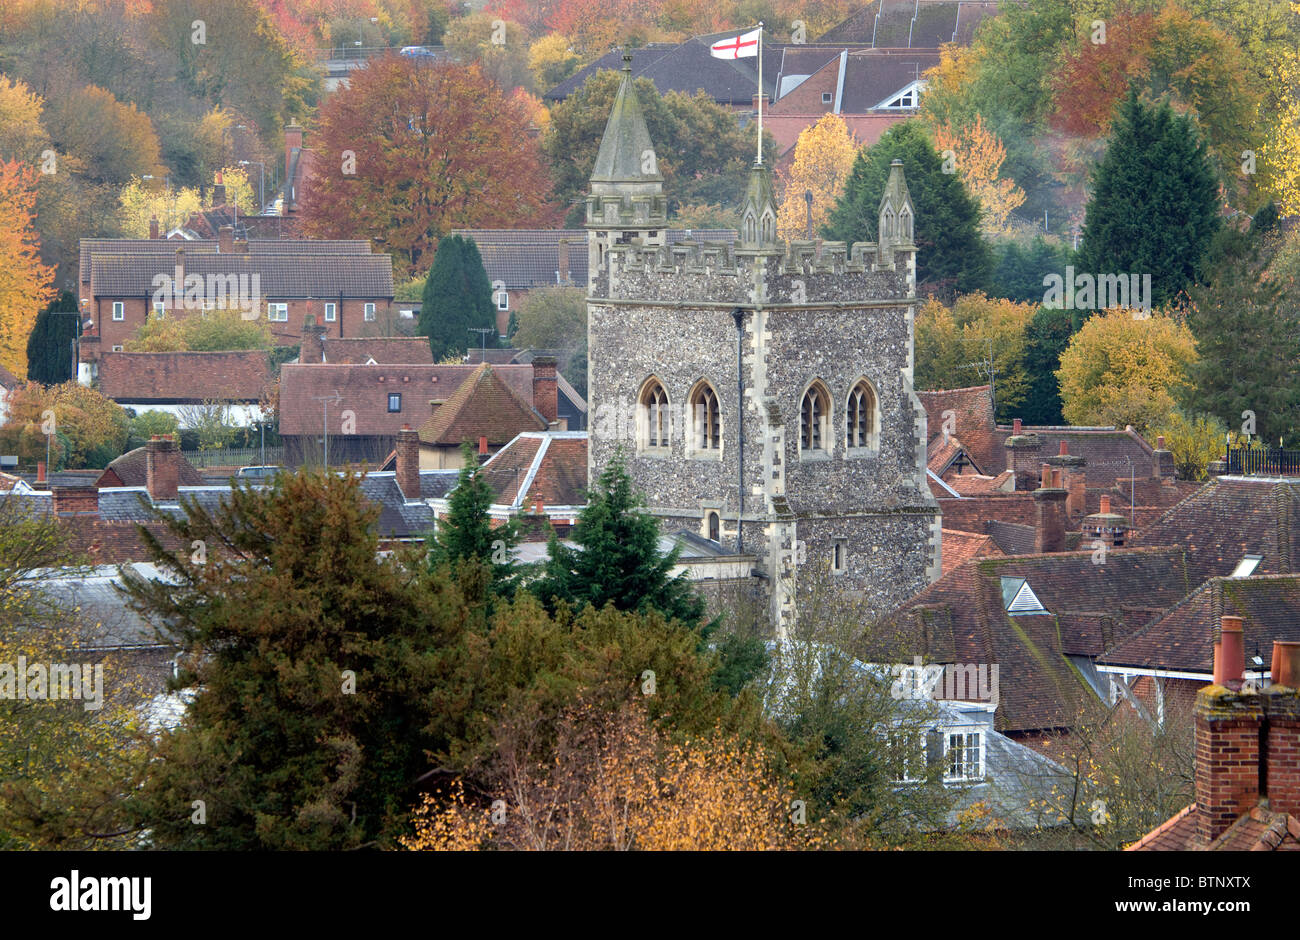 A Chilterns landscape view of old Amersham, the parish church tower dominates the Autumn scene - Stock Image